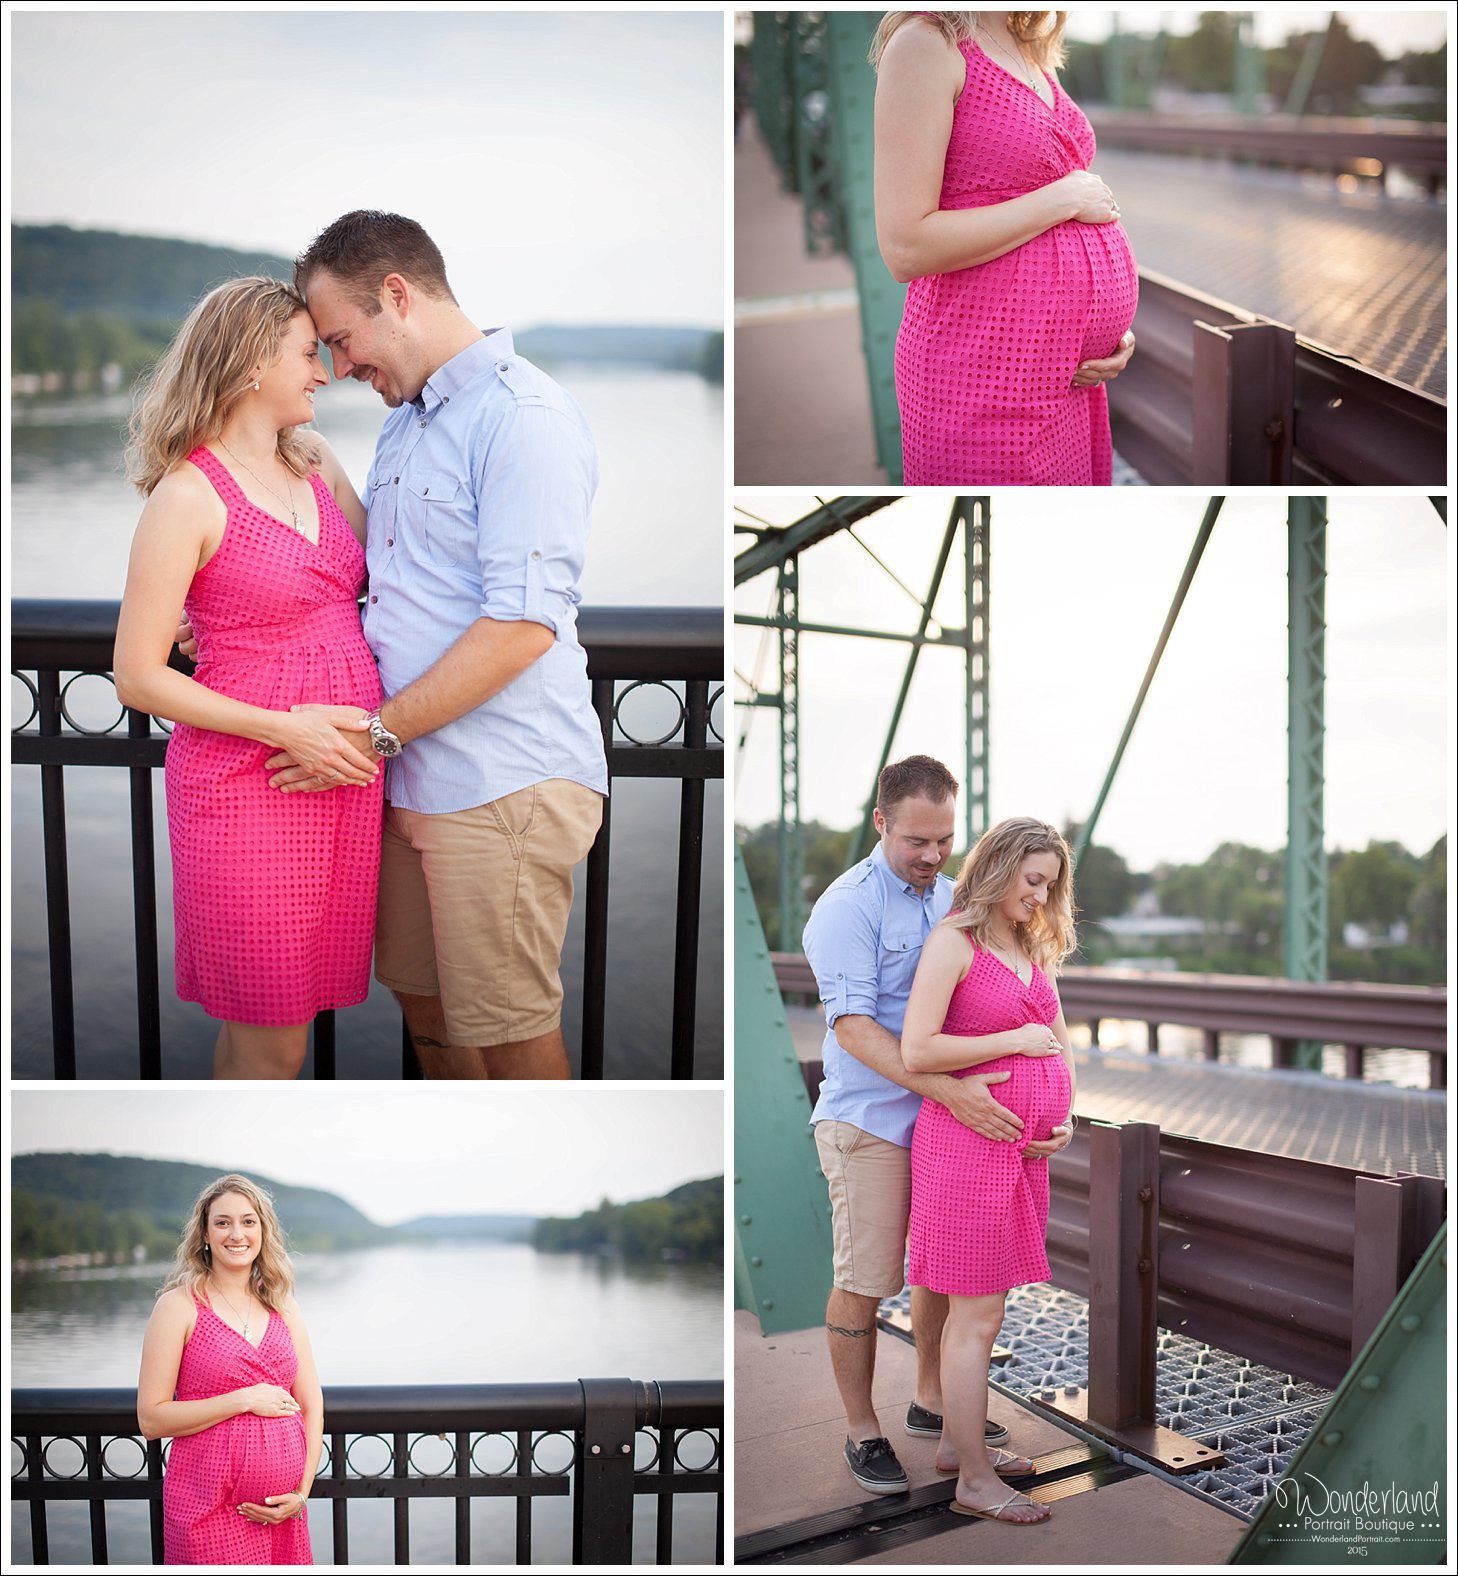 New Hope Bucks County PA Maternity Portraits Delaware River | WonderlandPortrait.com